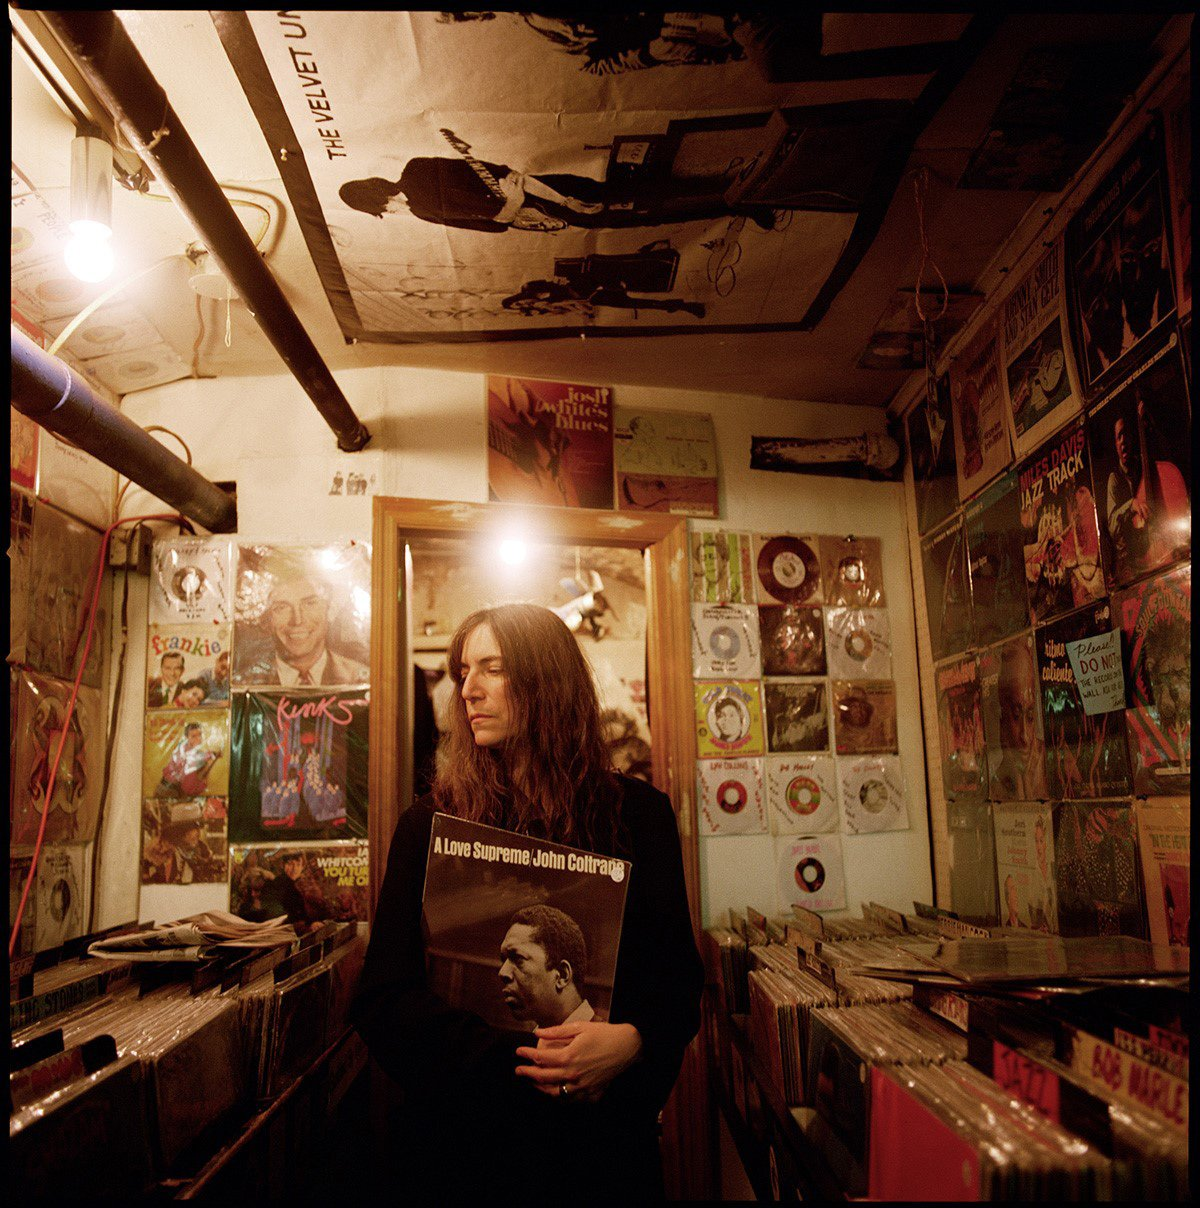 Danny Clinch, Patti Smith, New York, NY, 2000 © Danny Clinch